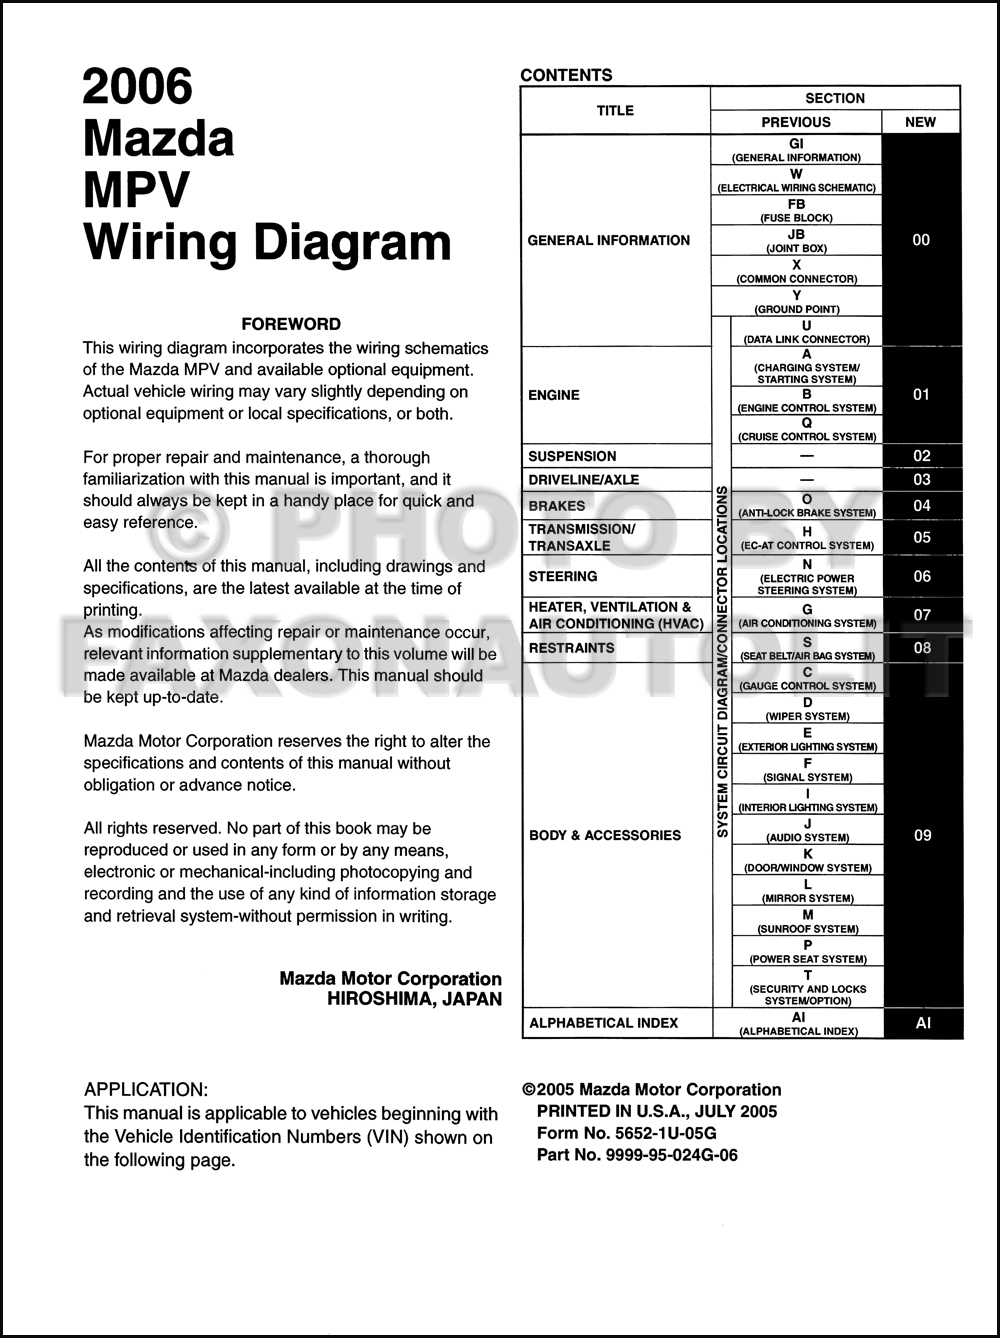 2000 Mazda Millenia Wiring Diagram Manual Original Schematic 2005 Tribute Mpv Rh Banyan Palace Com 3